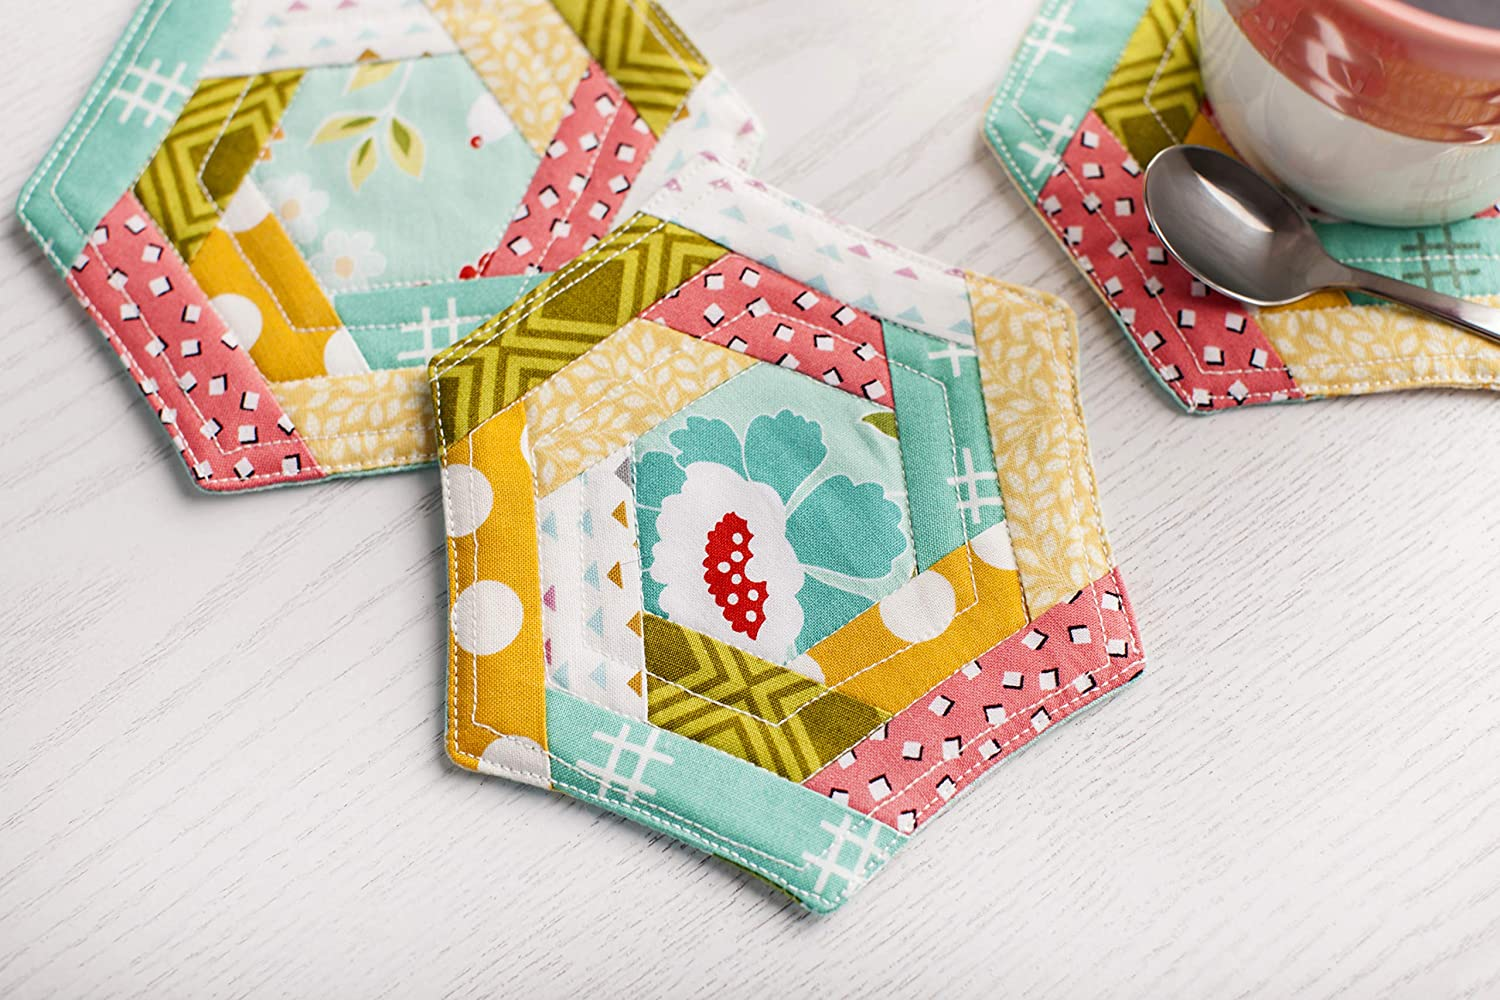 Cricut Designer Fabric Sampler on Trend